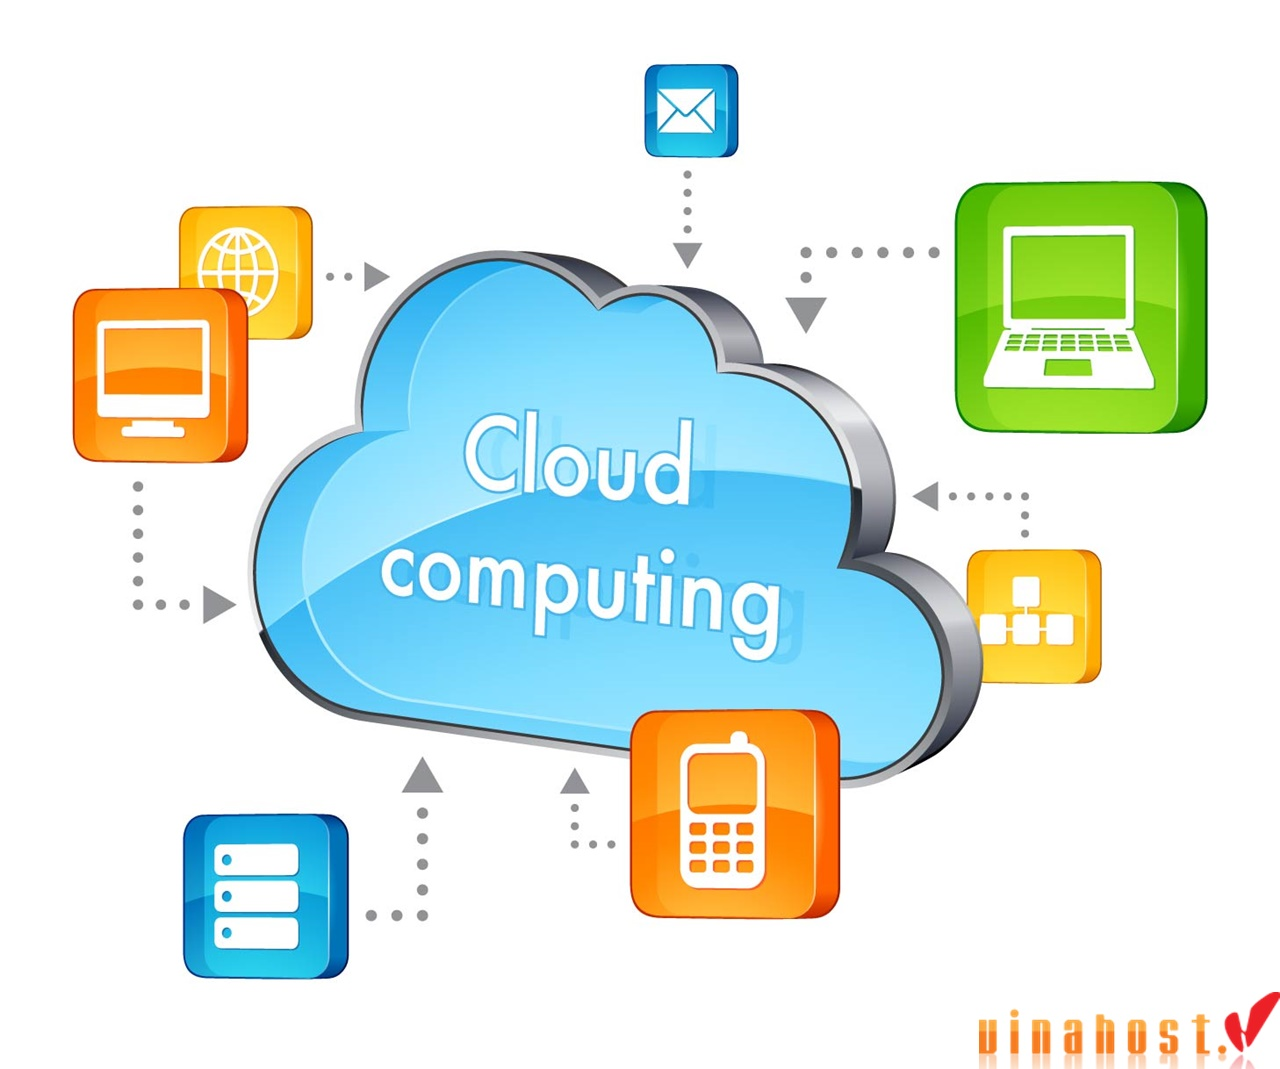 vinahost-Cloud-servers-Vietnam-security-What-enterprises-should-know-part-1-2